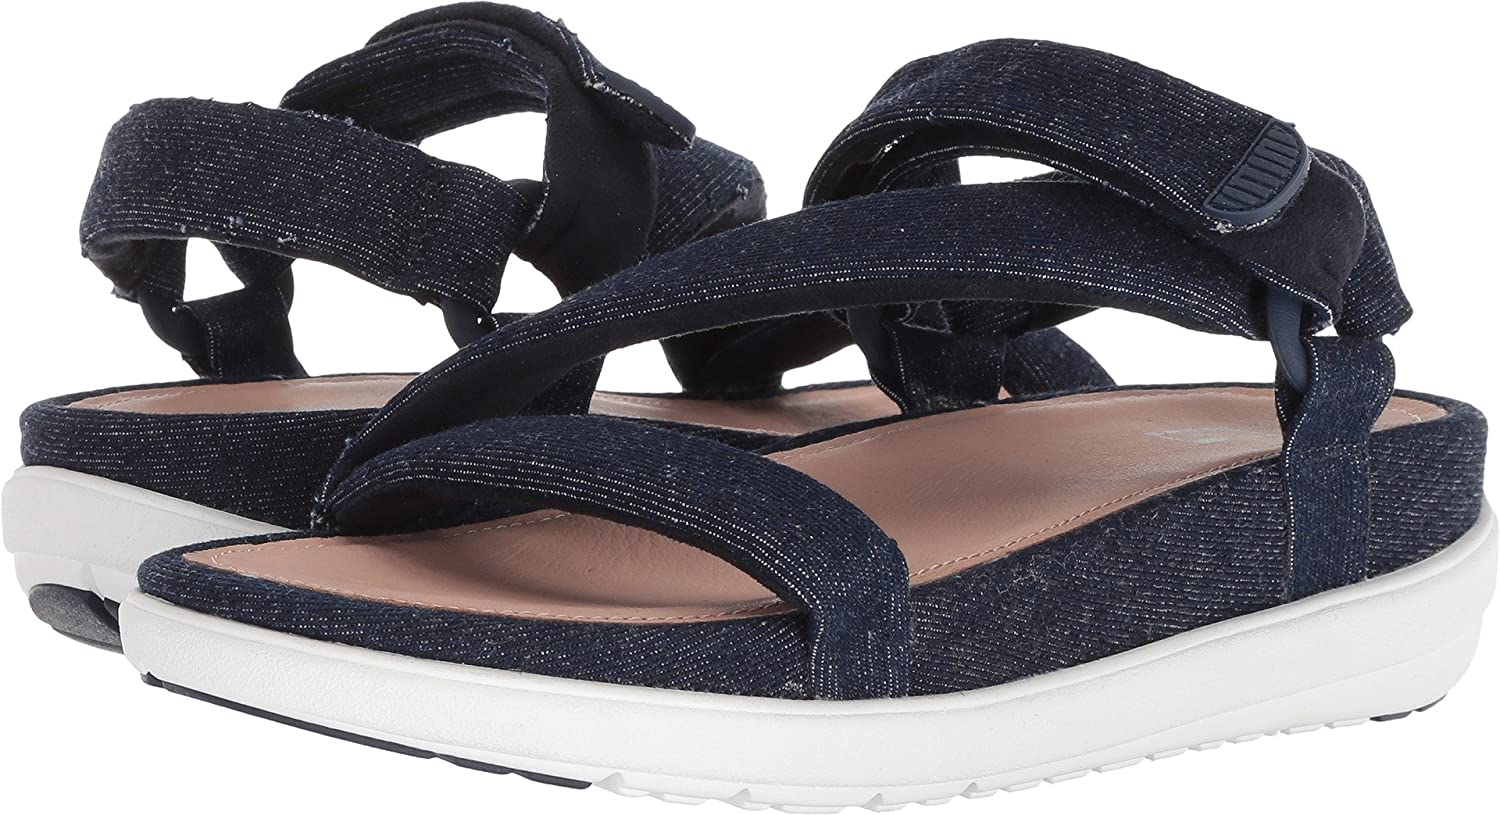 70d1e14d1406f Fitflop Women s Loosh Luxe¿ Z-Strap Denim Sandals Dark Blue Denim 11 M US   Amazon.co.uk  Shoes   Bags